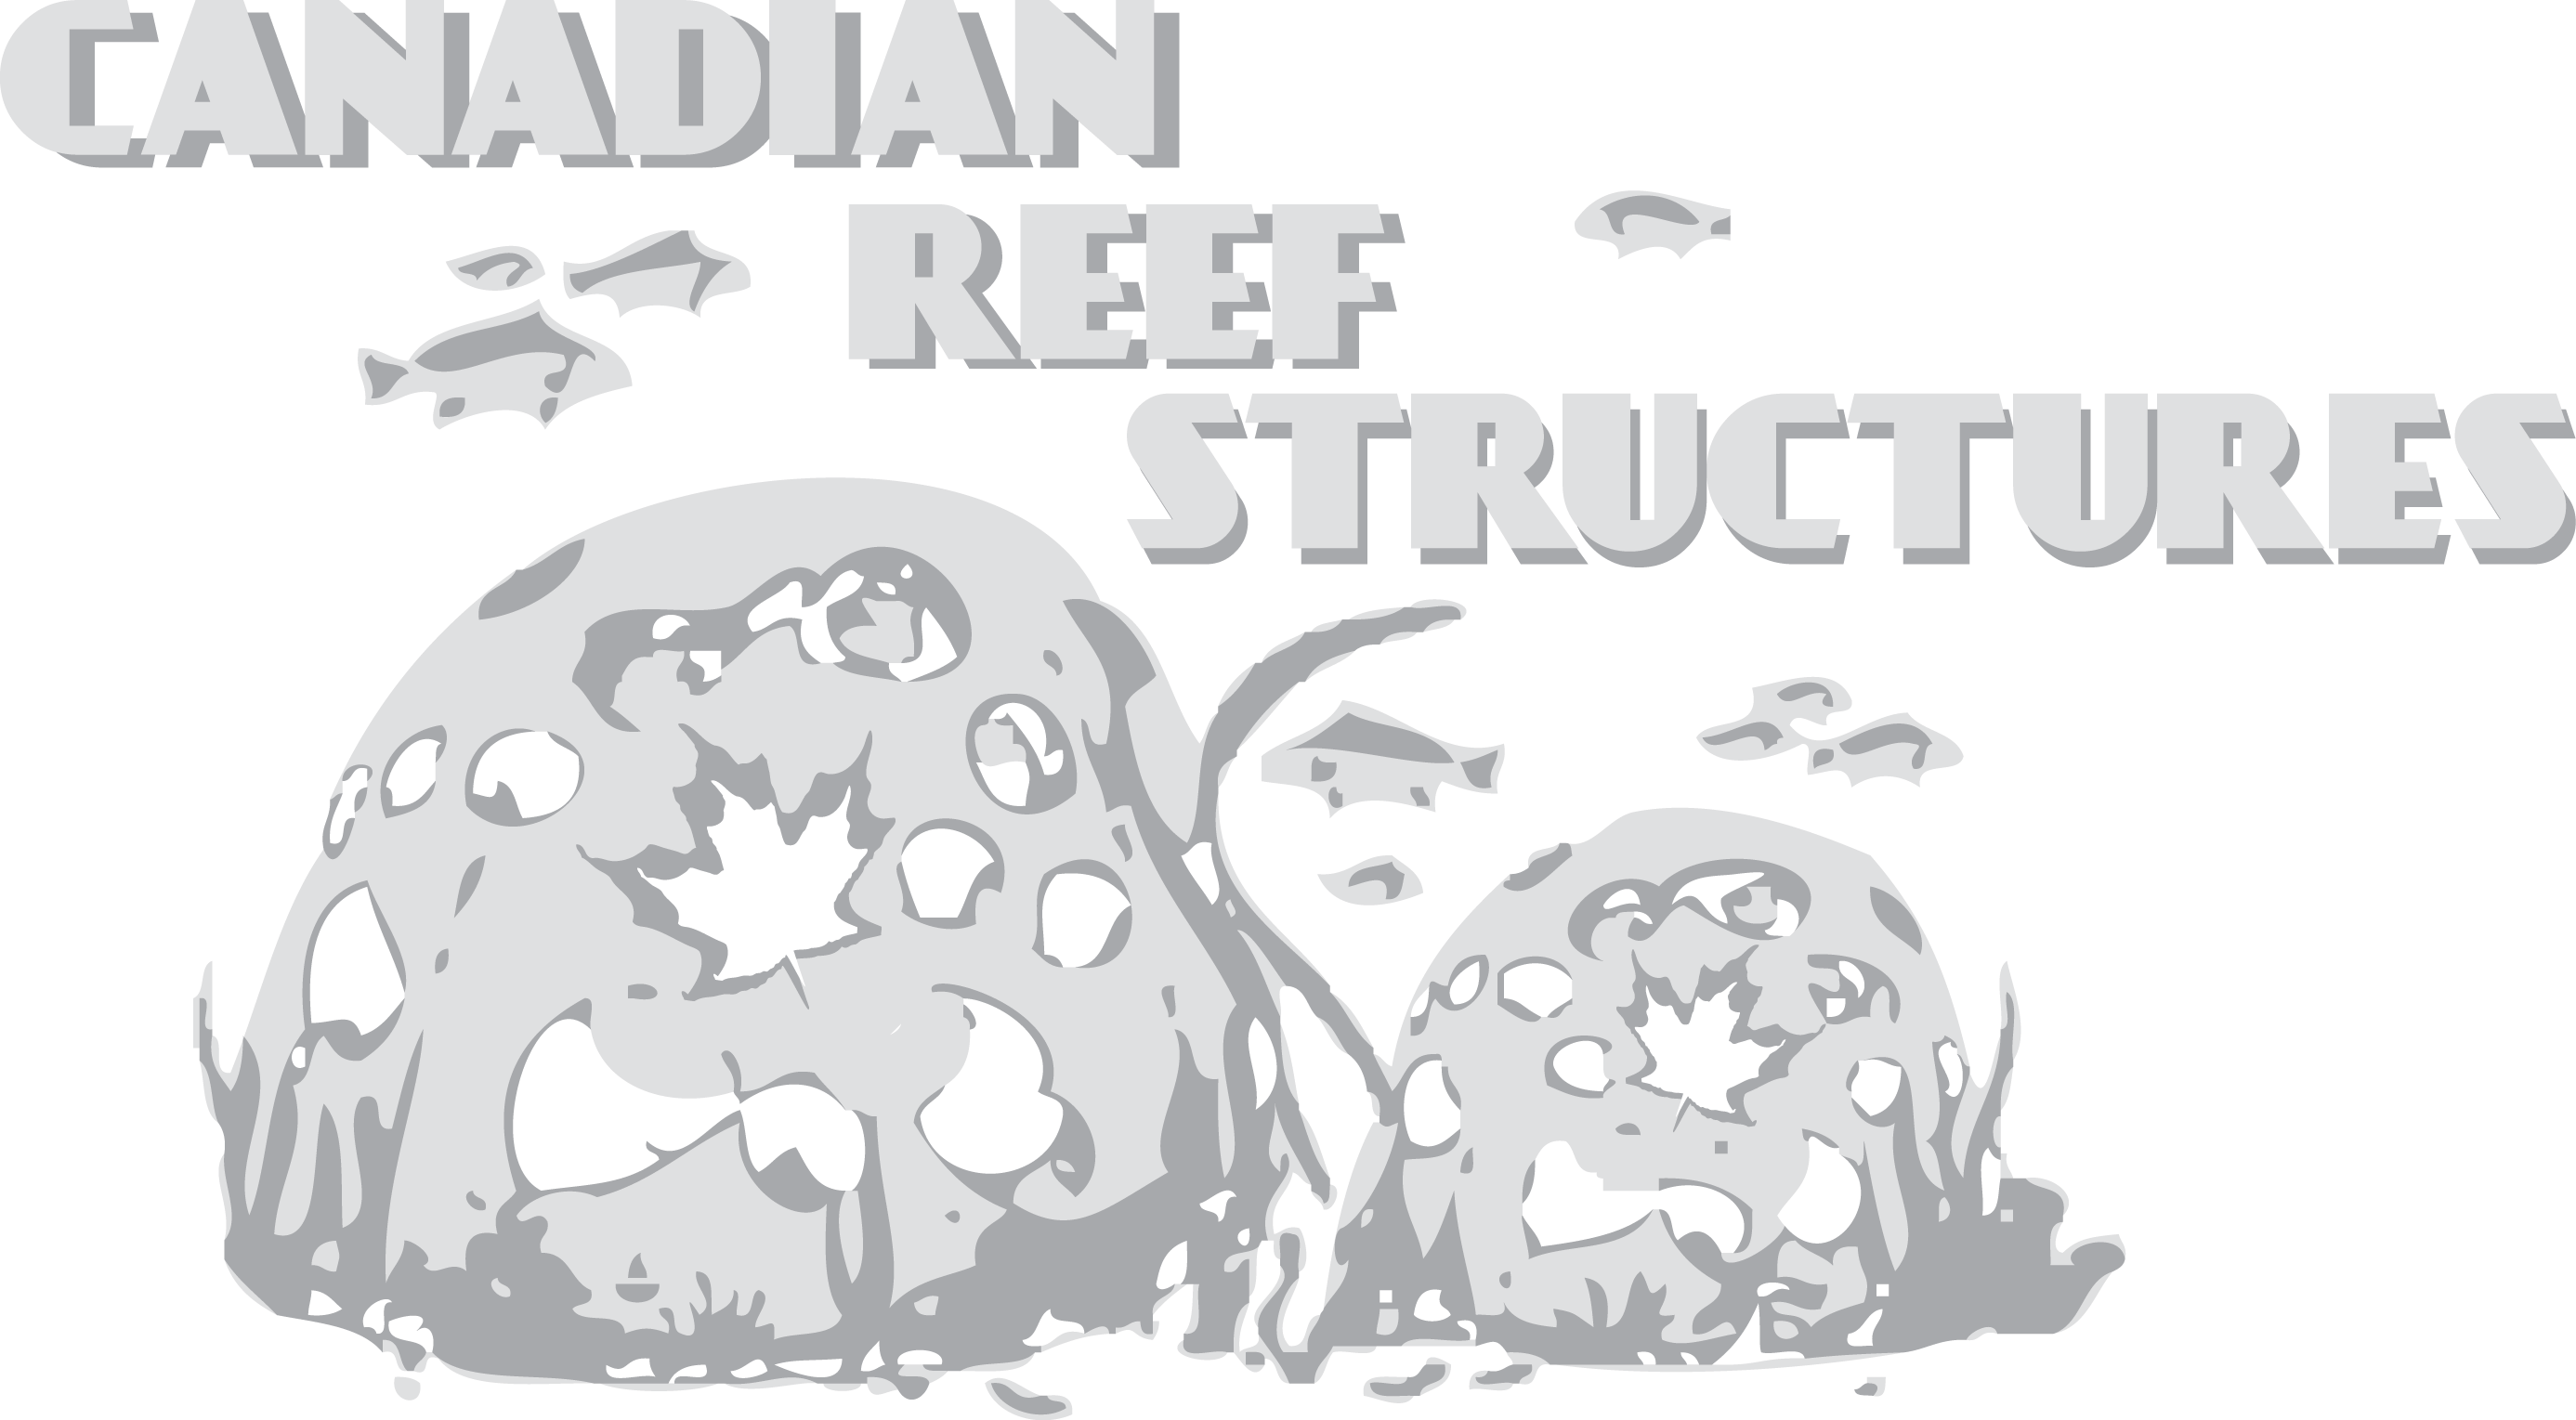 Canadian Reef Ball Structures Logo